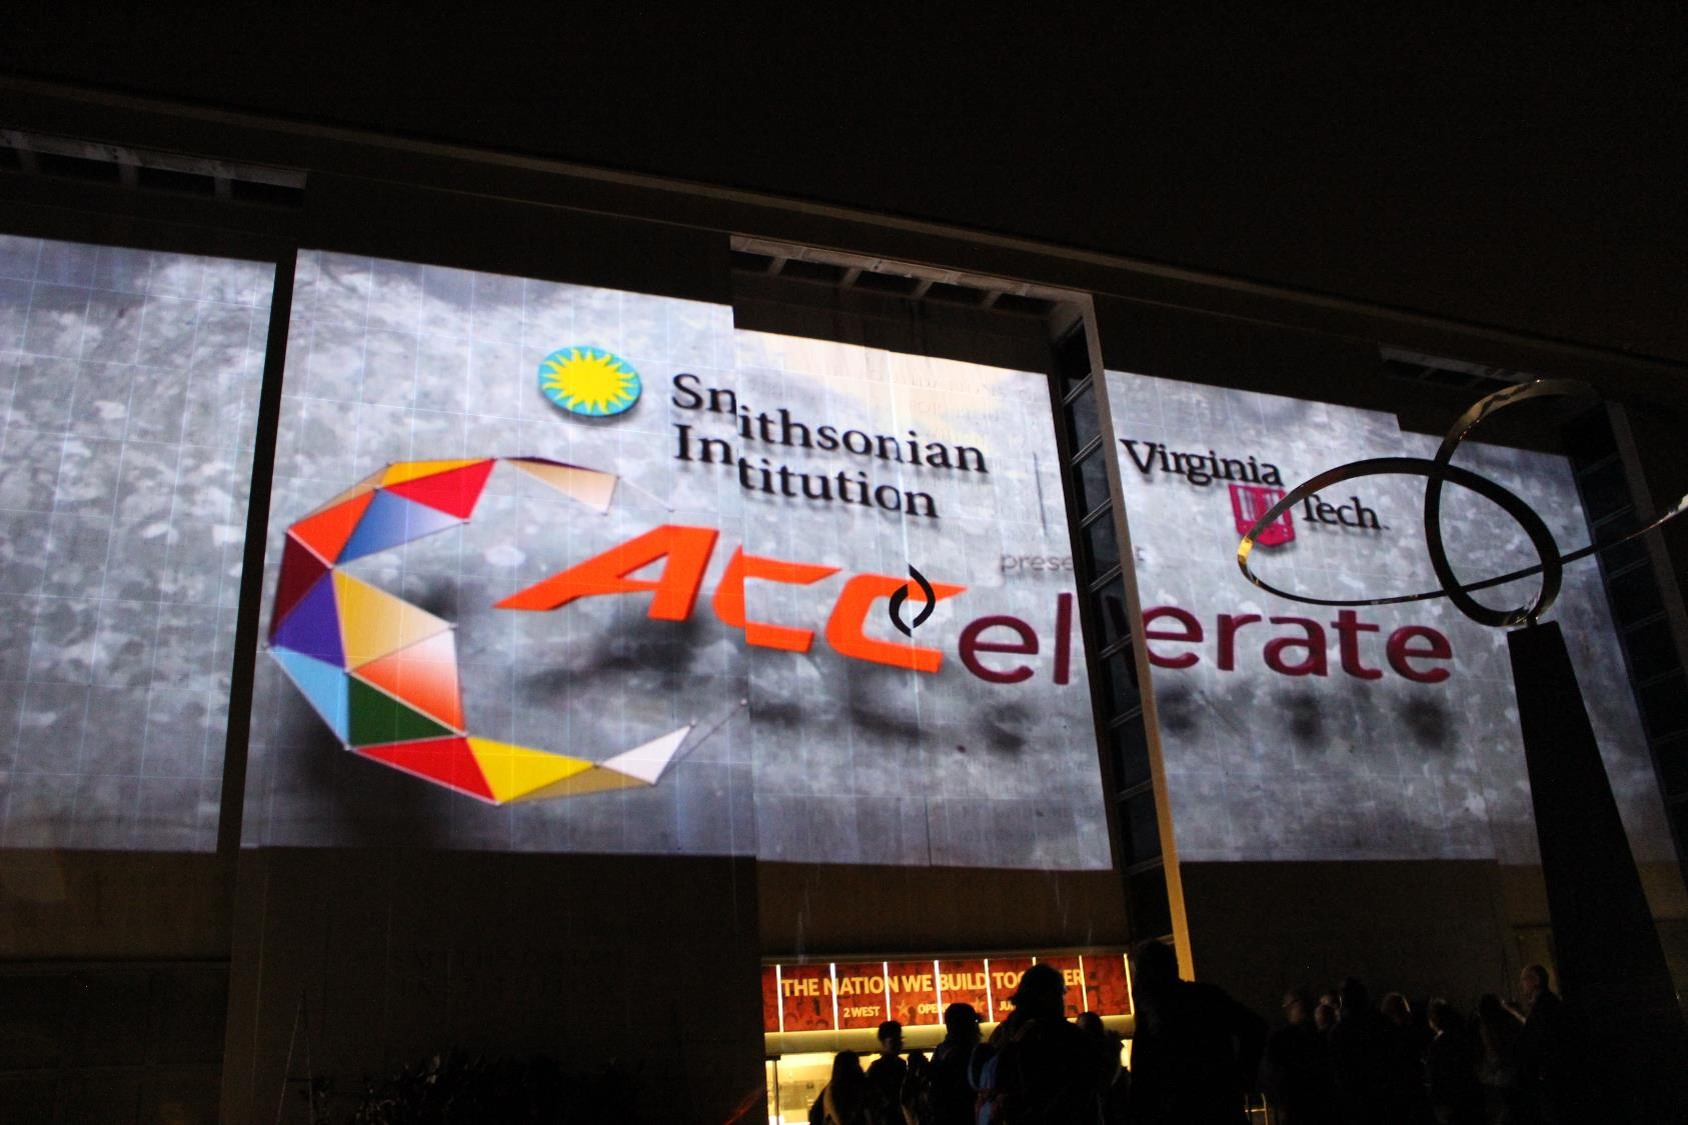 A projection of the ACCelerate logo is displayed on the exterior of the Smithsonian National Museum of American History.